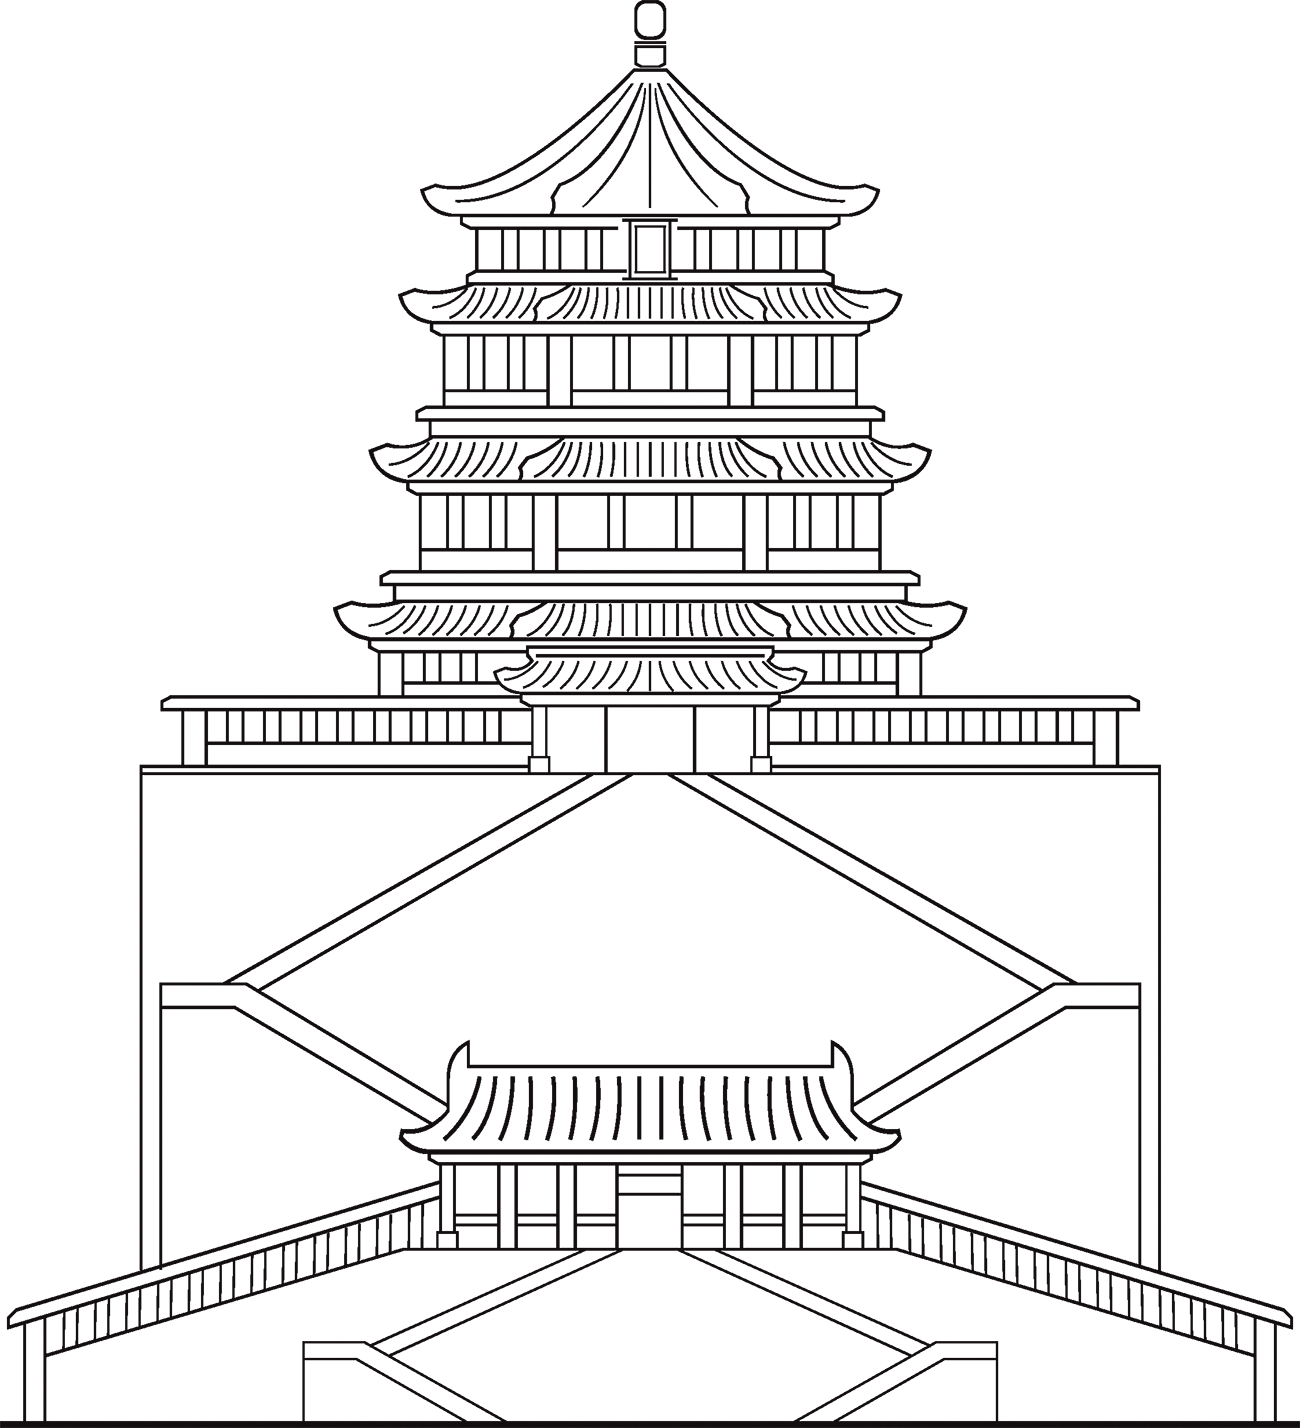 jpg freeuse download Of heavenly purity forbidden. Palace drawing